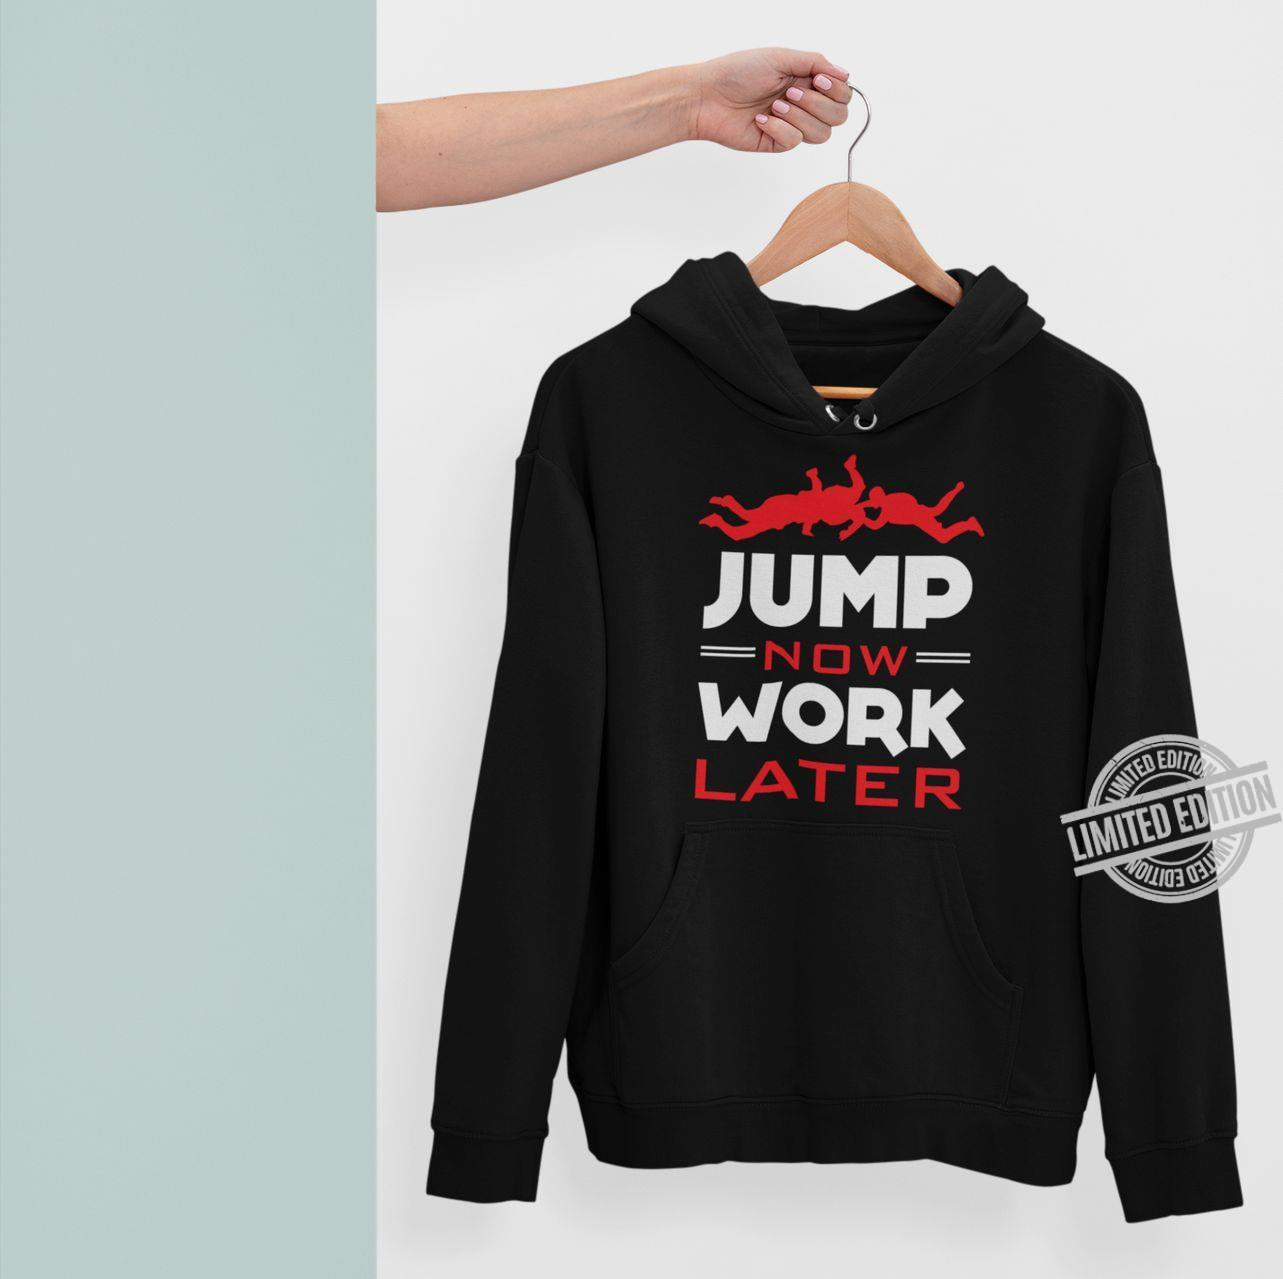 Jump Now Work Later Shirt